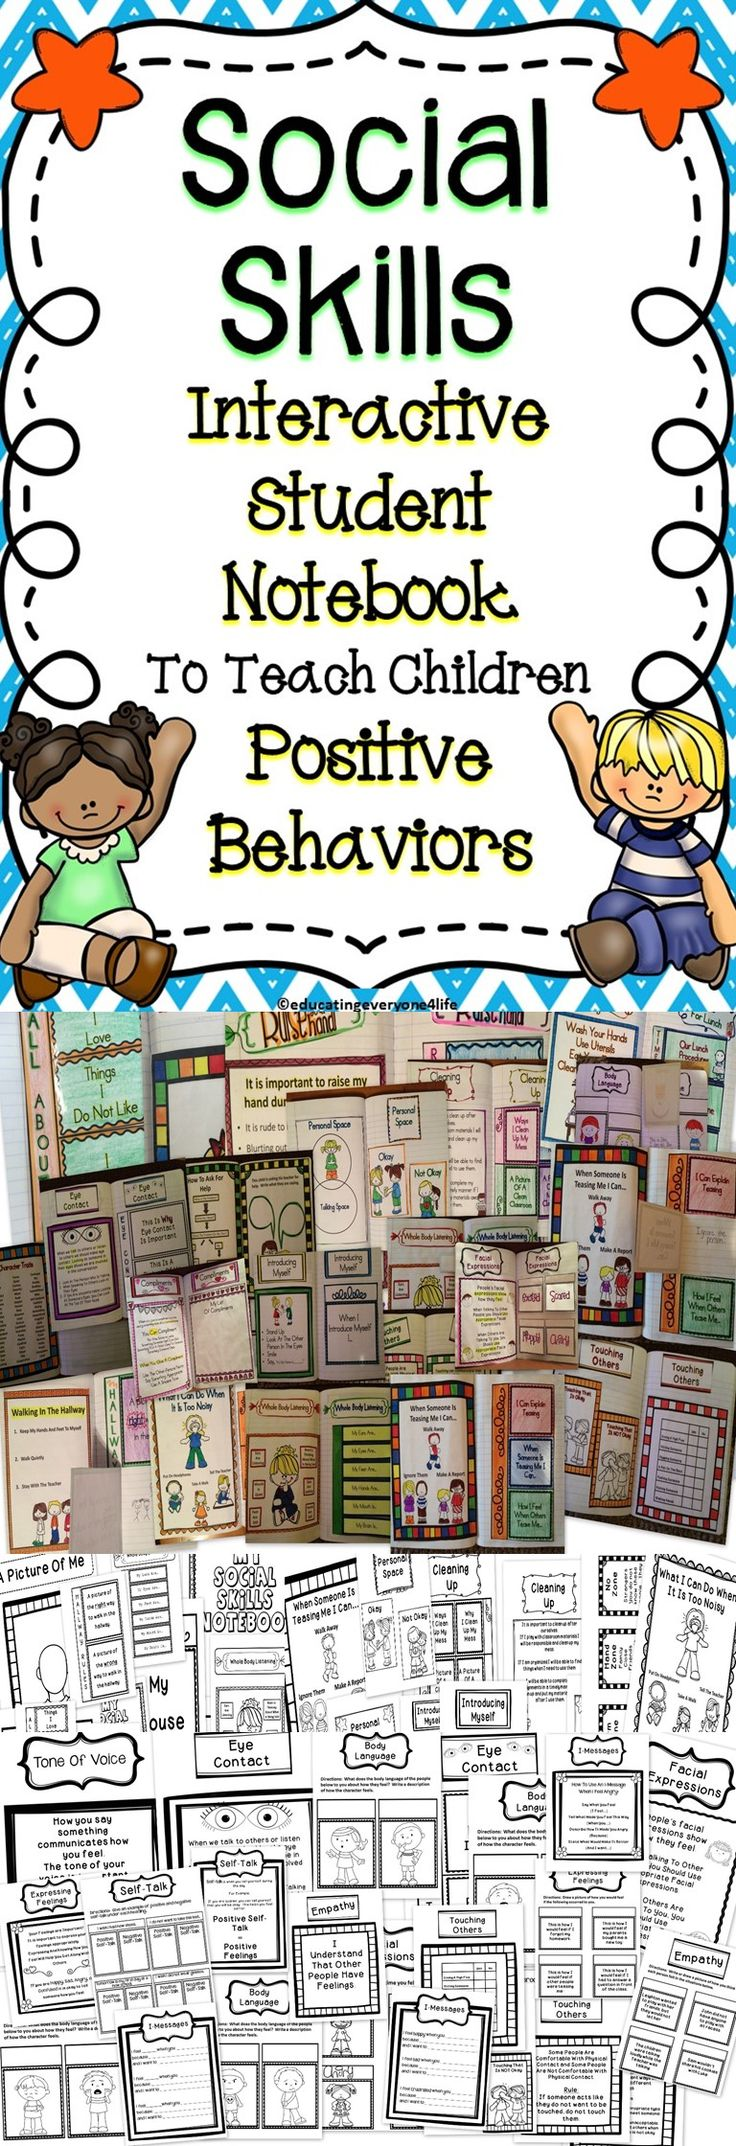 This Interactive Notebook Is All About Social Skills. Children will learn positive social skills to use in their everyday life. #teach Repinned by SOS Inc. Resources pinterest.com/sostherapy/.